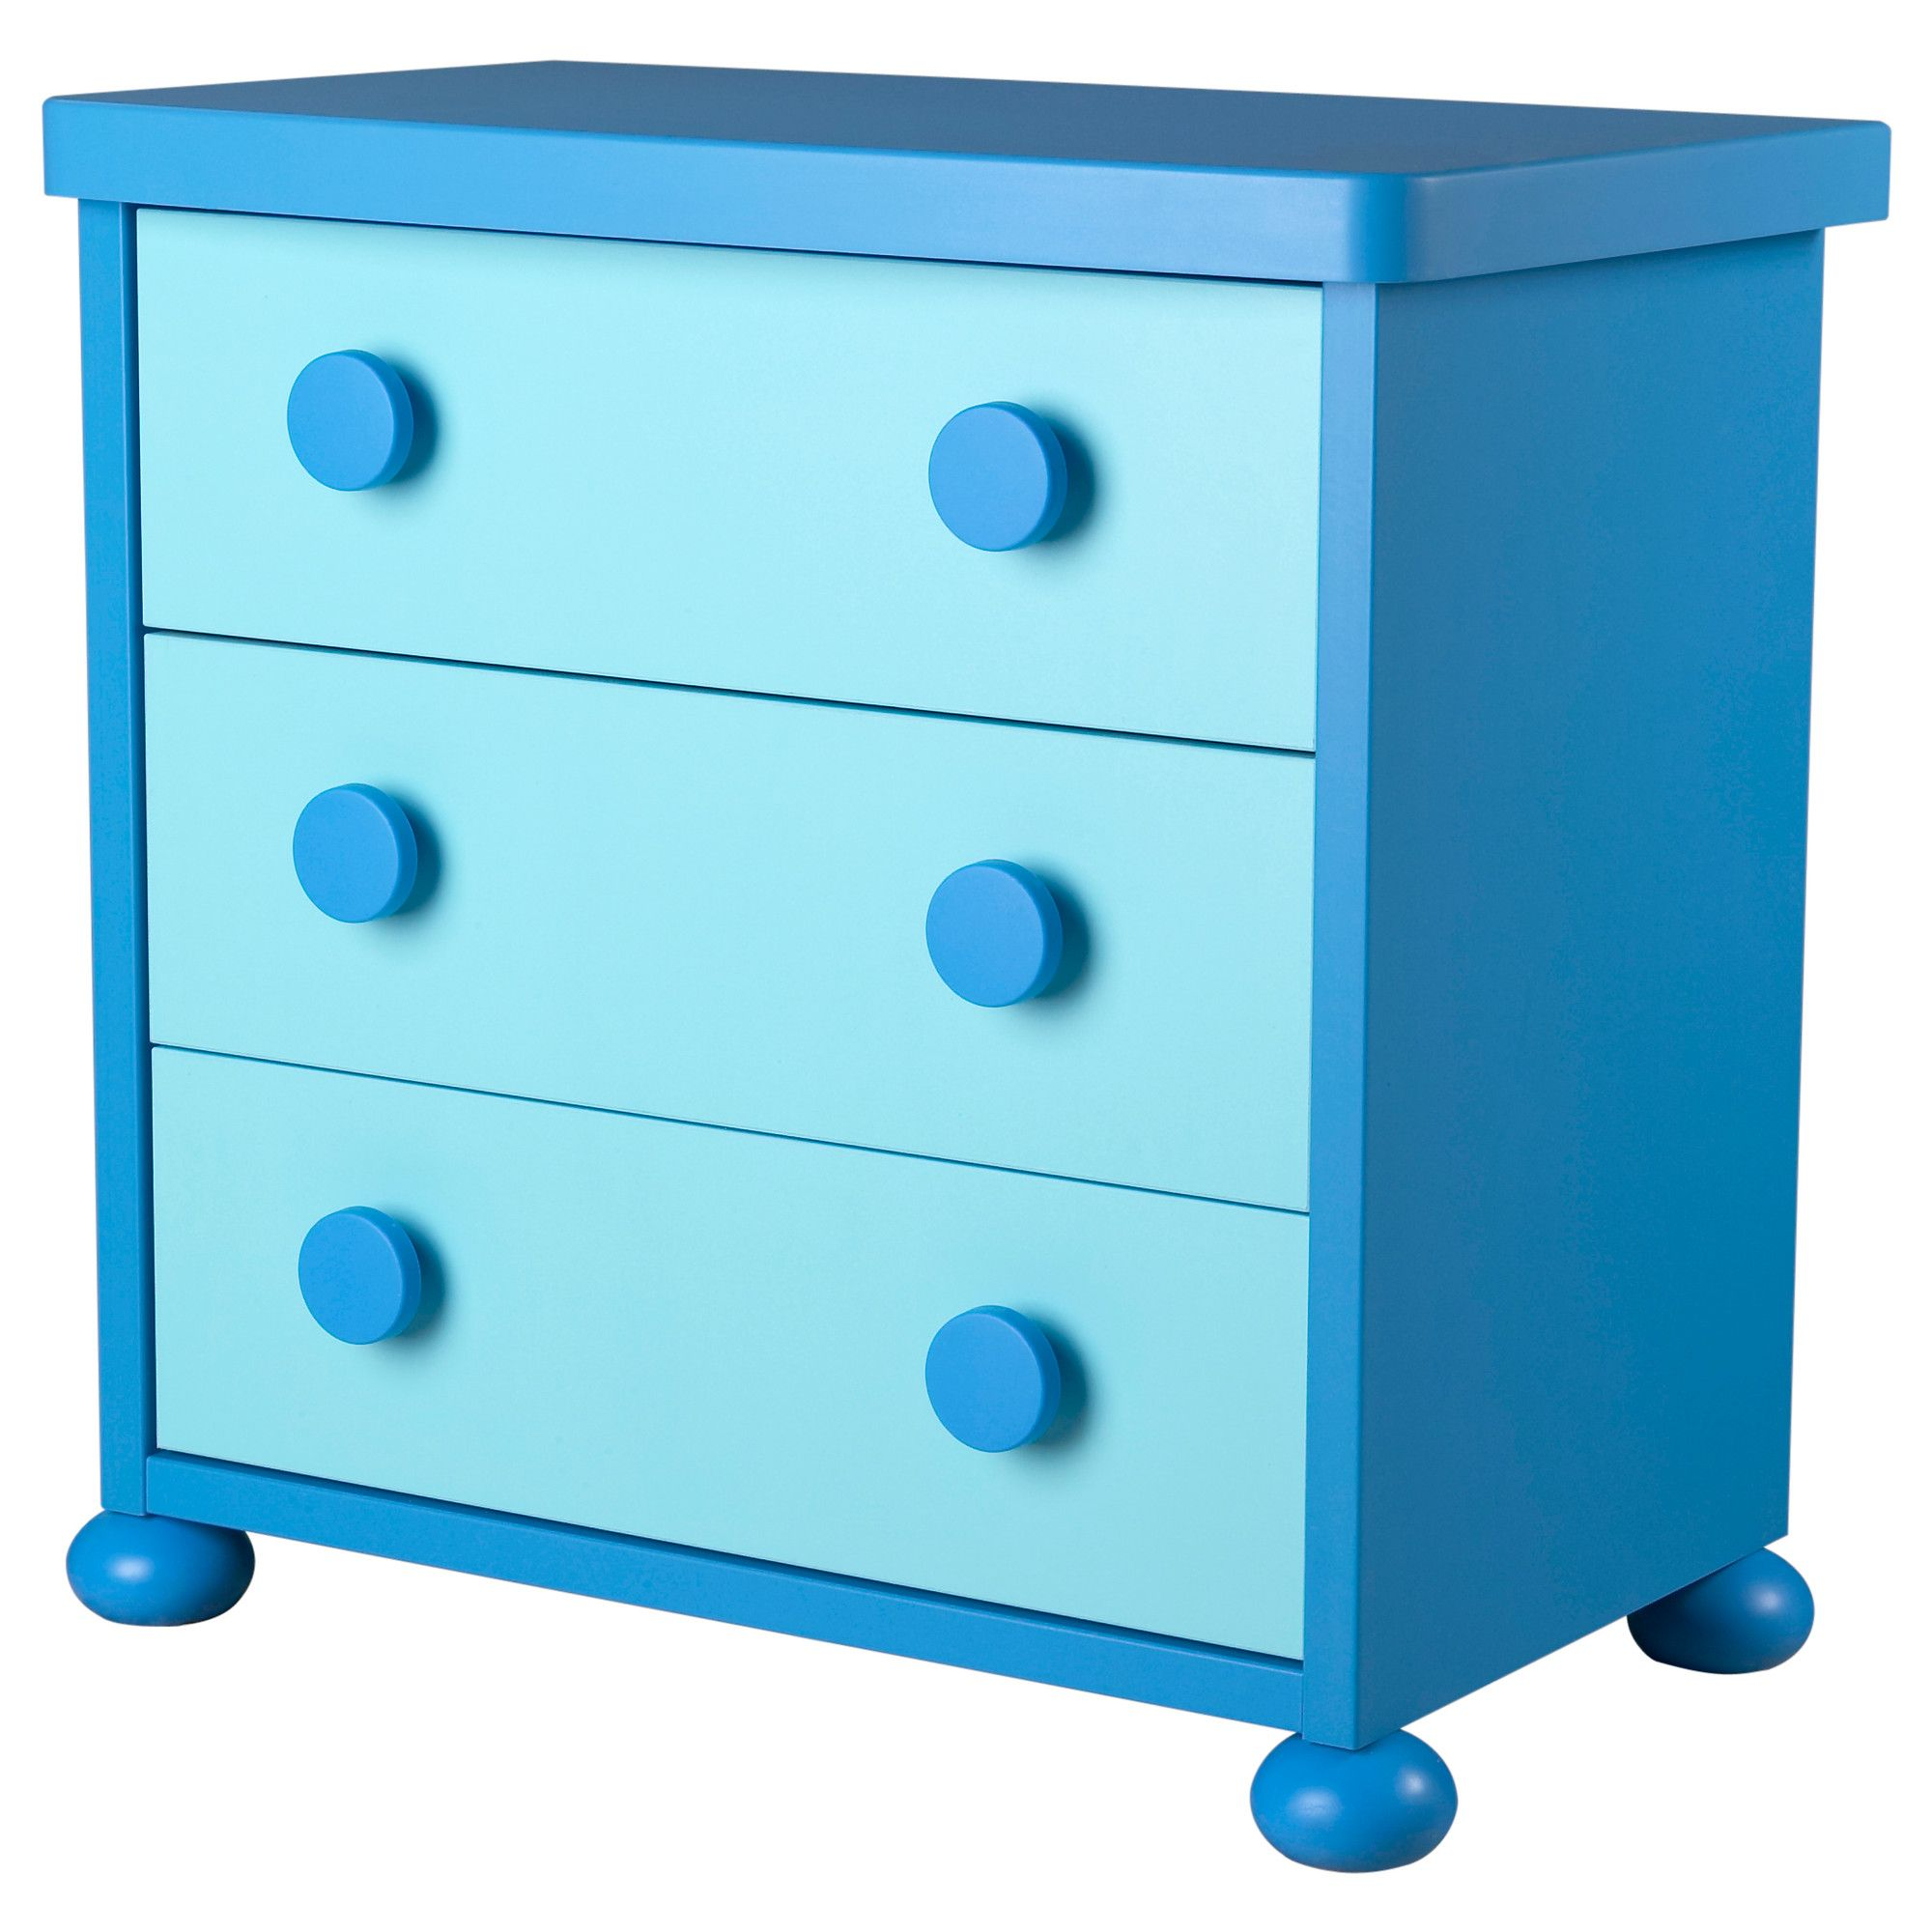 Ikea Us Furniture And Home Furnishings Childrens Storage